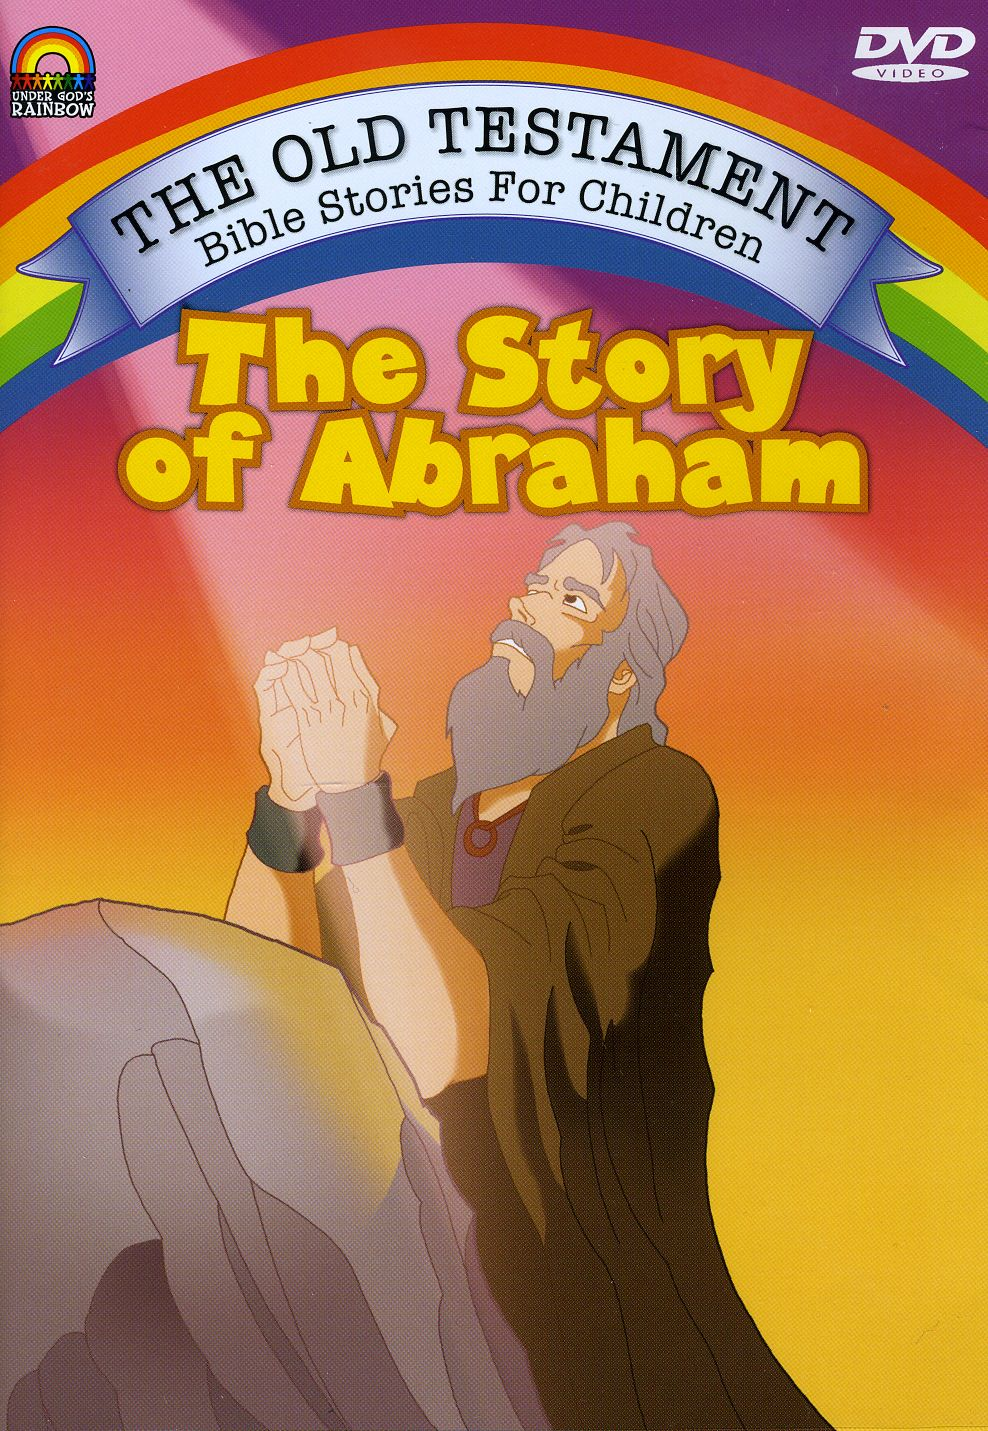 The Old Testament Bible Stories For Children - The Story Of Abraham (DVD)